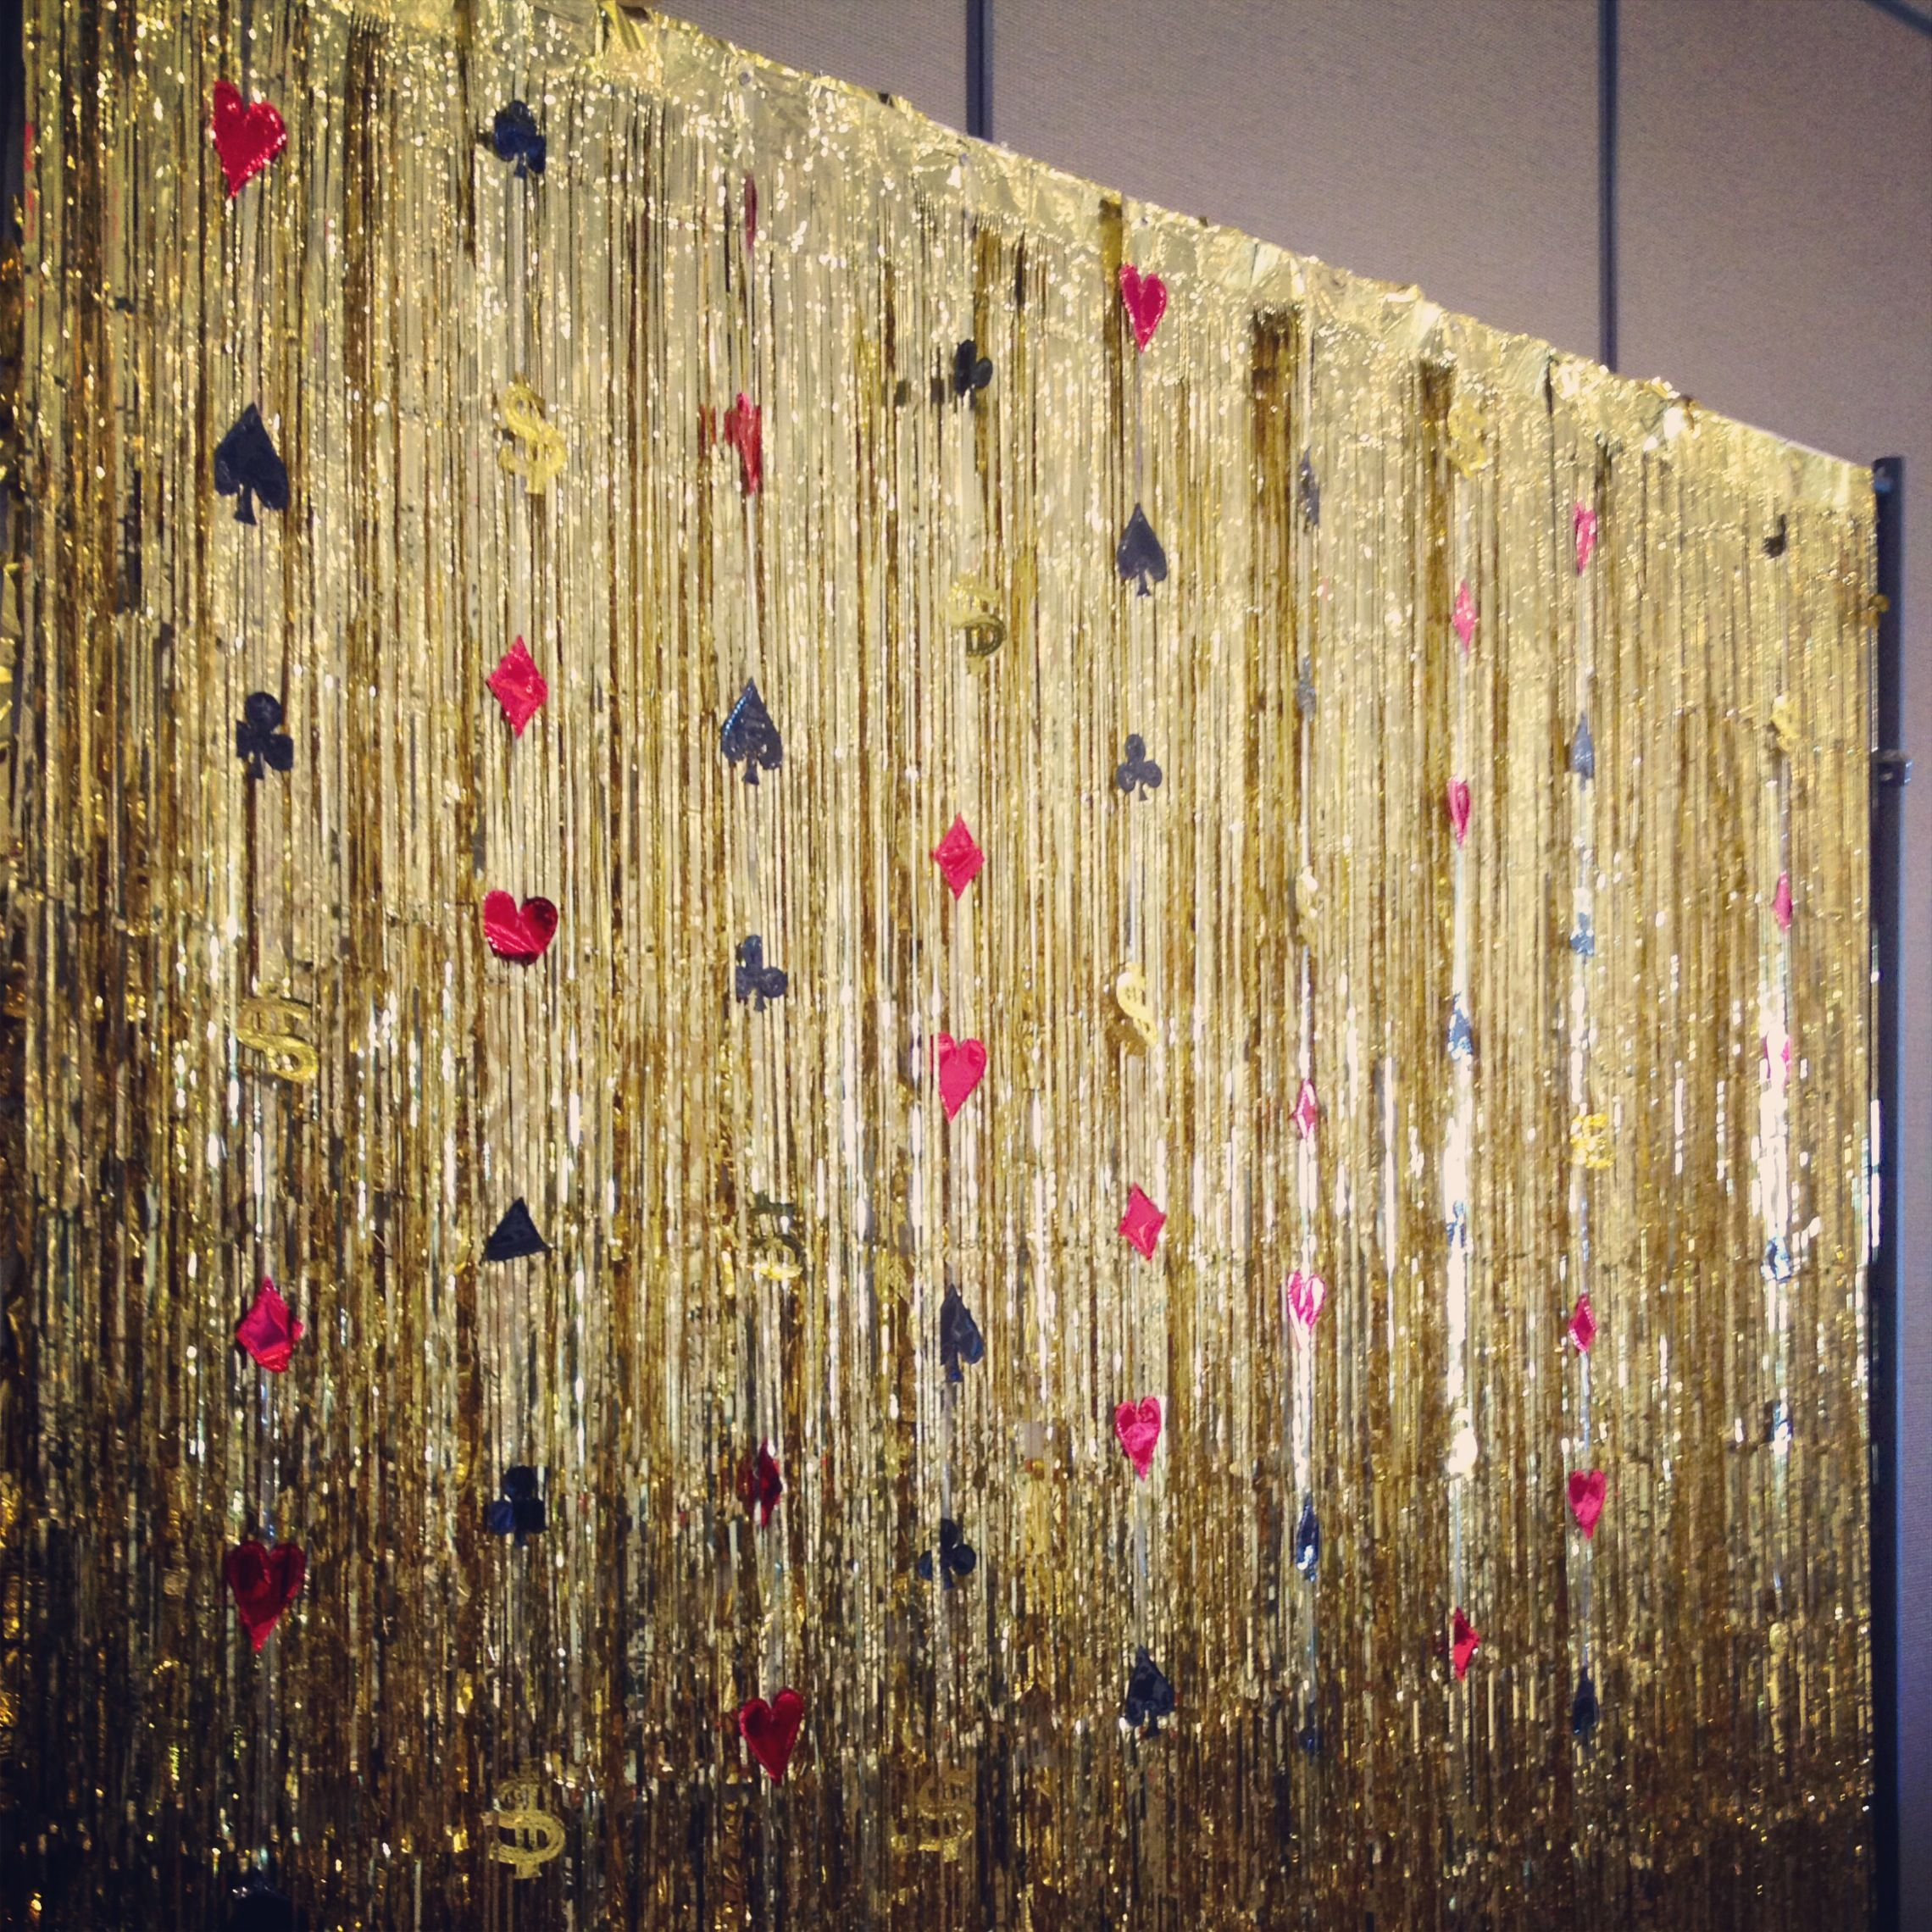 Casino-inspired photo backdrop for Vegas themed event  Made